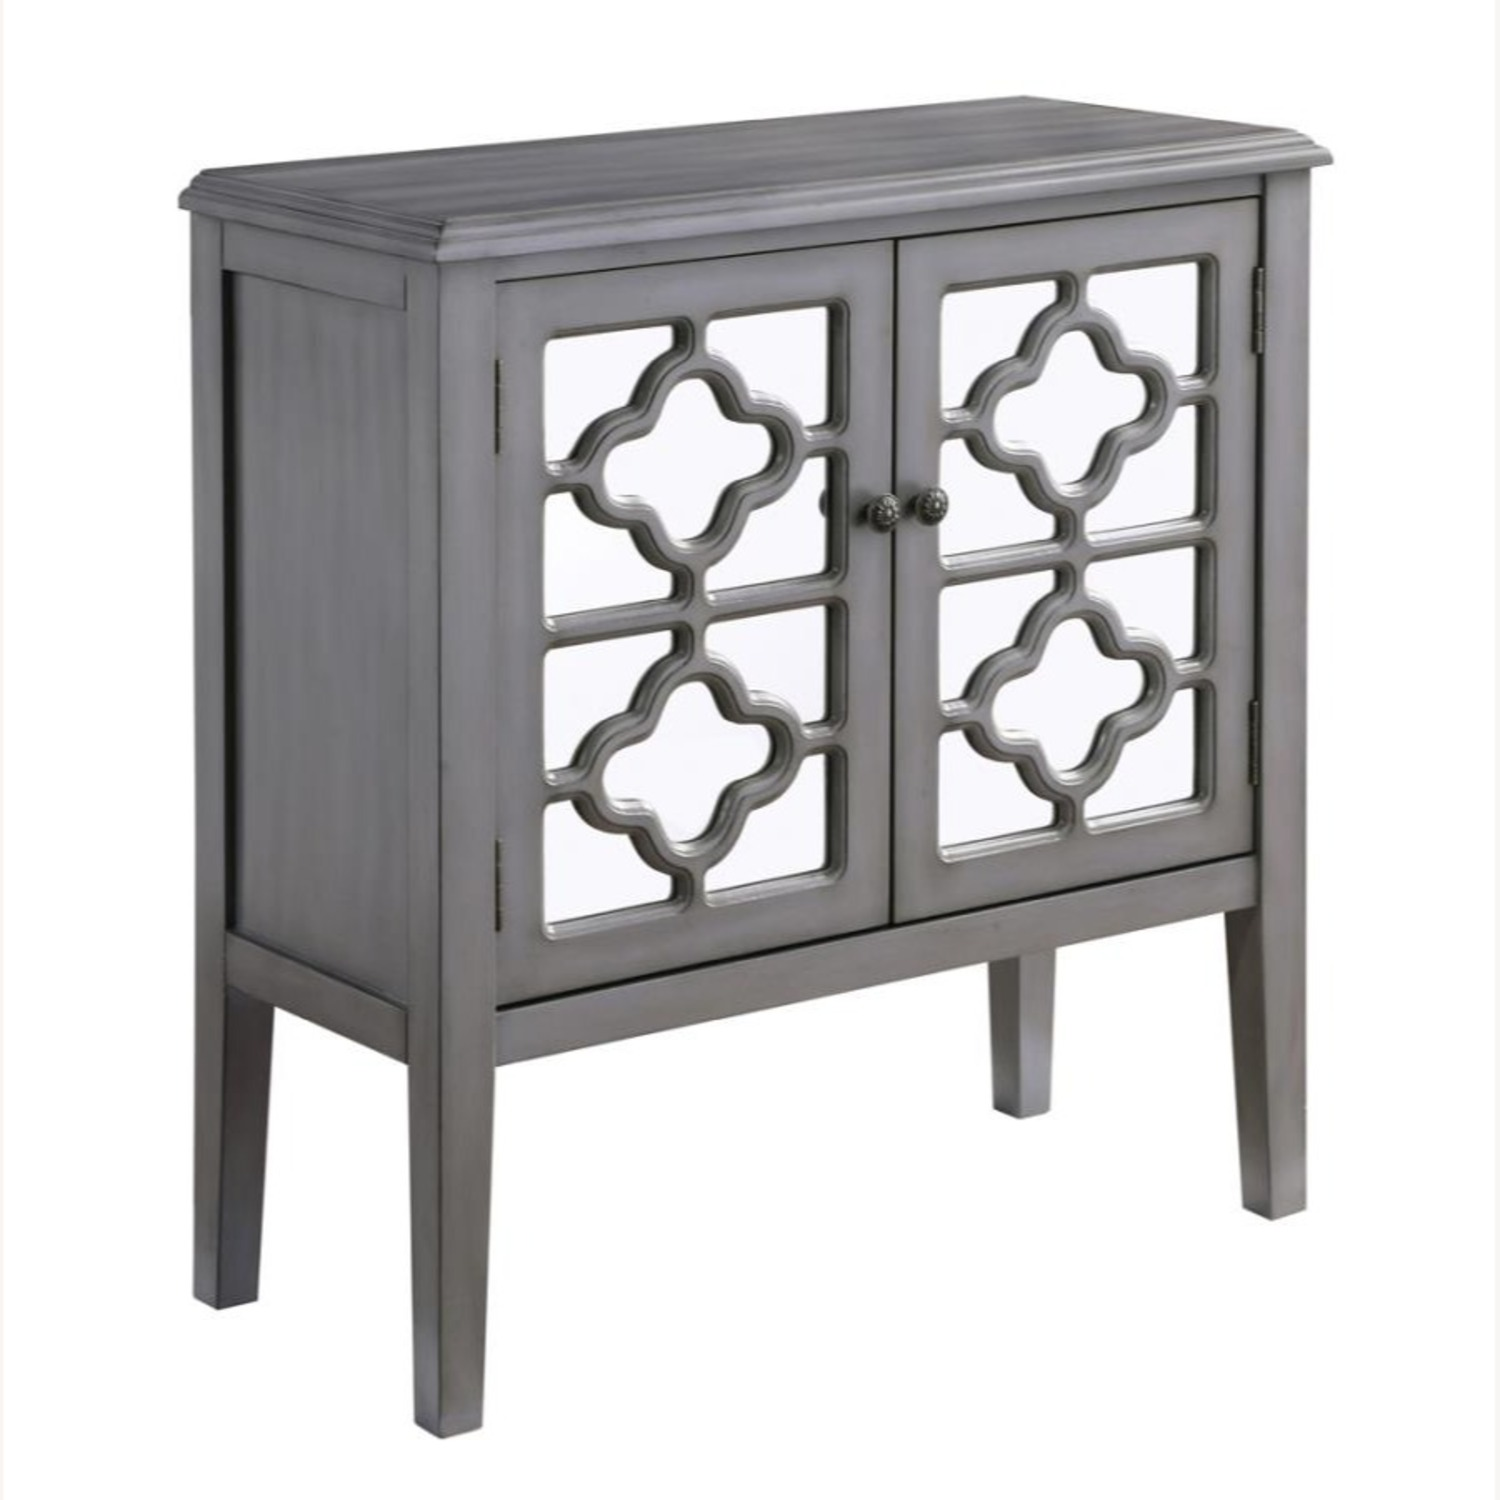 Accent Cabinet In Grey Hardwood Finish - image-0